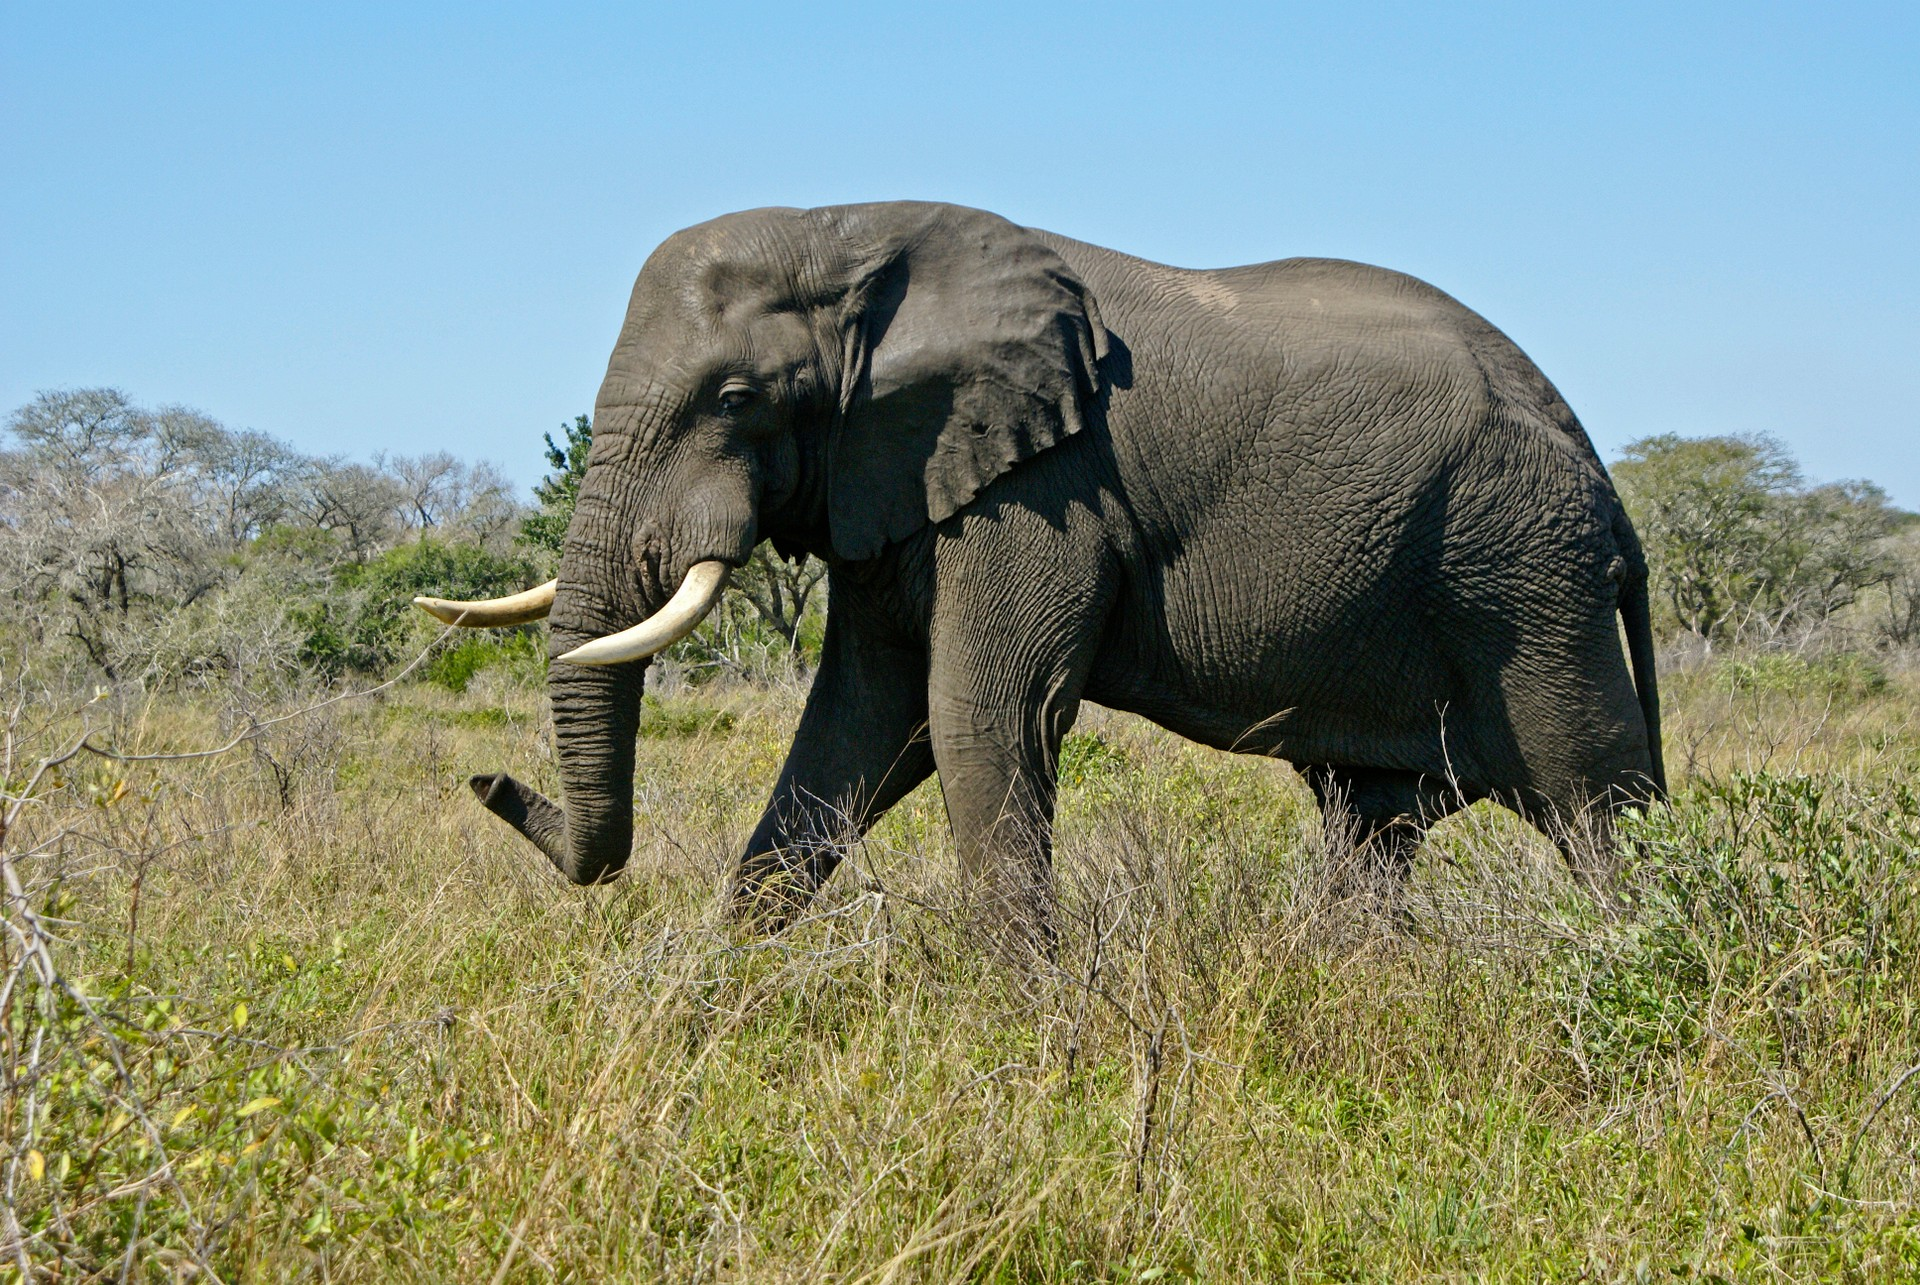 Bull elephant in South Africa